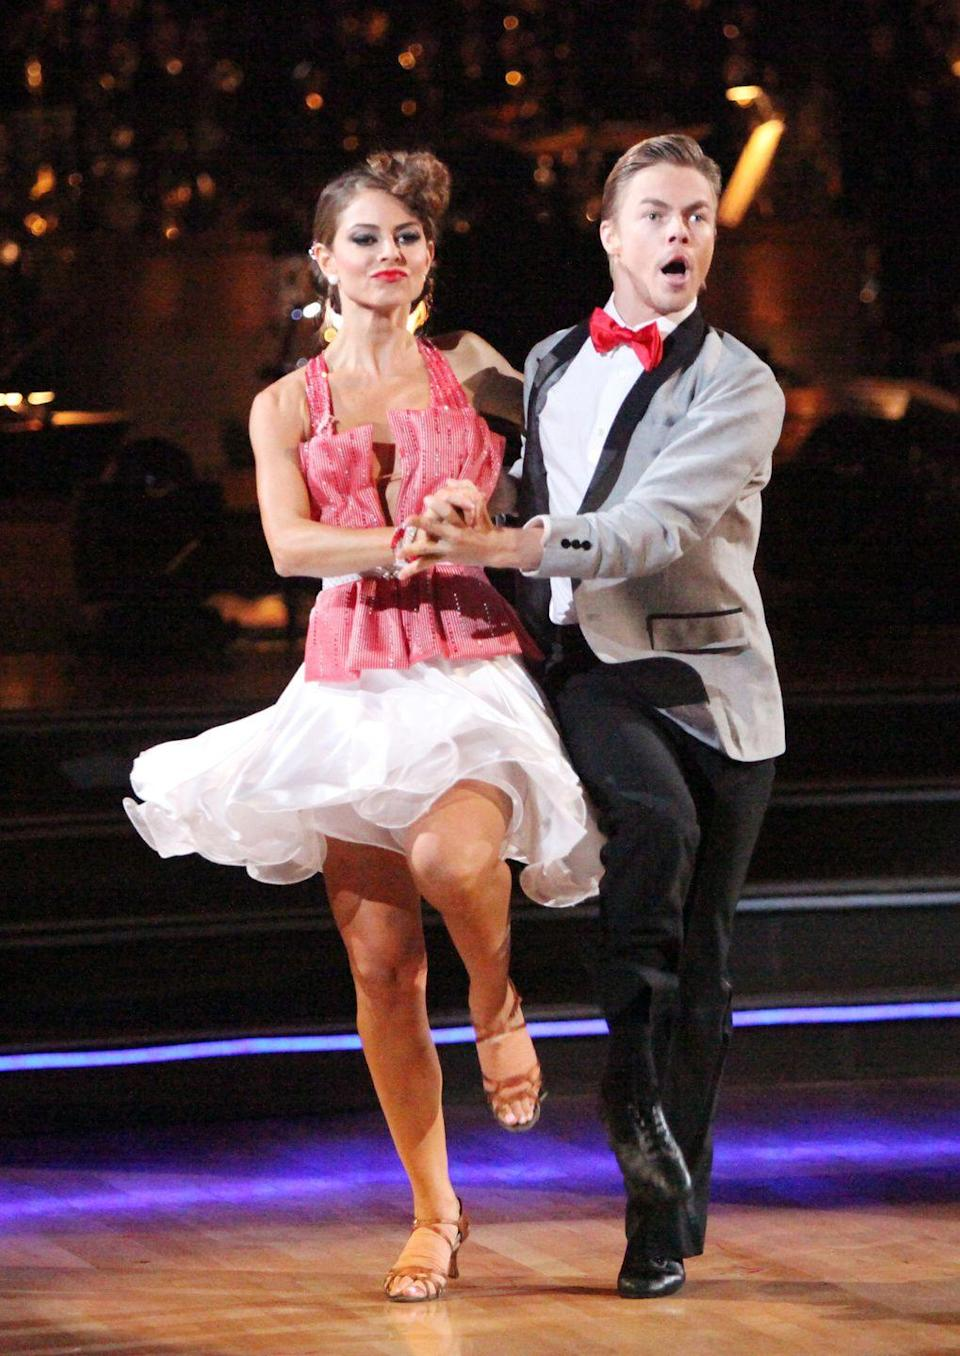 "<p>Partnered with Derek Hough for season 14, Maria proved her claim to a ""high tolerance for pain."" The <em>Extra</em> host continued dancing through a ripped intercostal muscle, broken ribs, <em>and</em> a stress fracture in her foot, per <em><a href=""https://people.com/tv/dancing-with-the-stars-maria-menounos-breaks-ribs-dances-on/"" rel=""nofollow noopener"" target=""_blank"" data-ylk=""slk:People"" class=""link rapid-noclick-resp"">People</a></em>. ""Dance broken"" became her motto and she said it gave her an edge on her competitors.</p>"